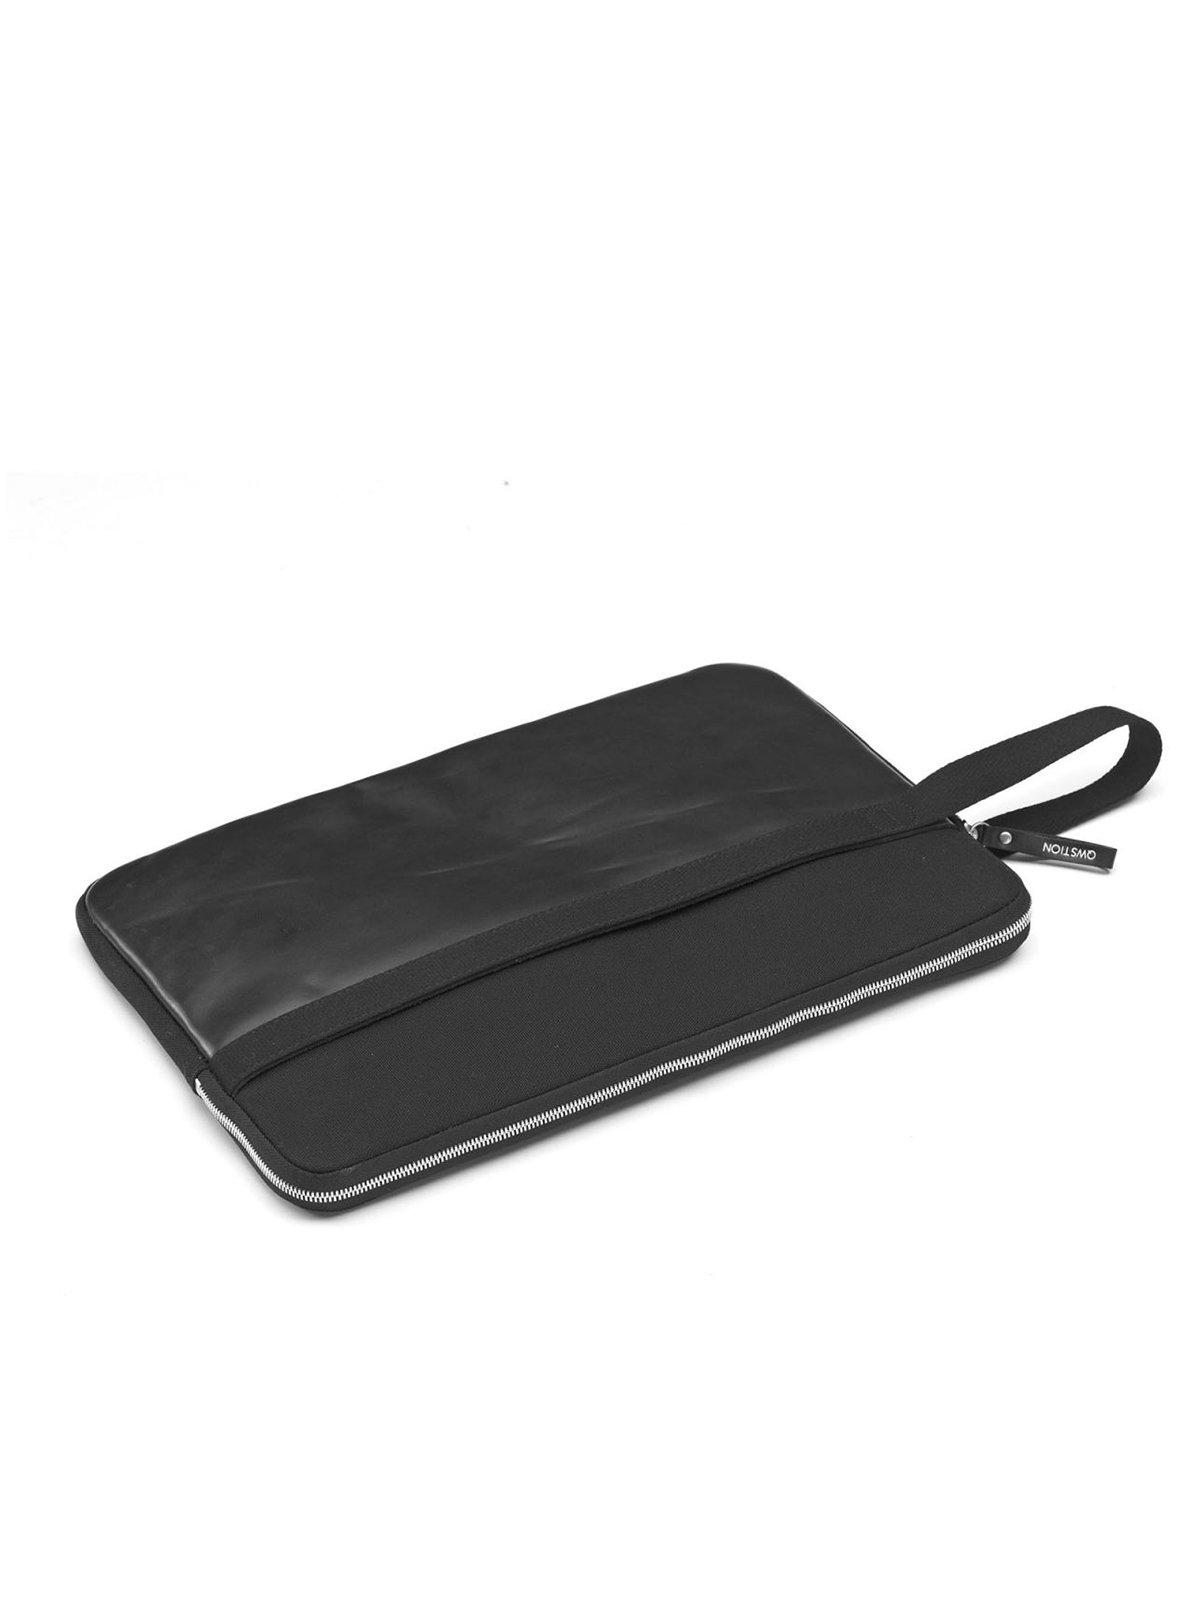 Qwstion Laptop Sleeve 15Inch Leather Black - MORE by Morello Indonesia